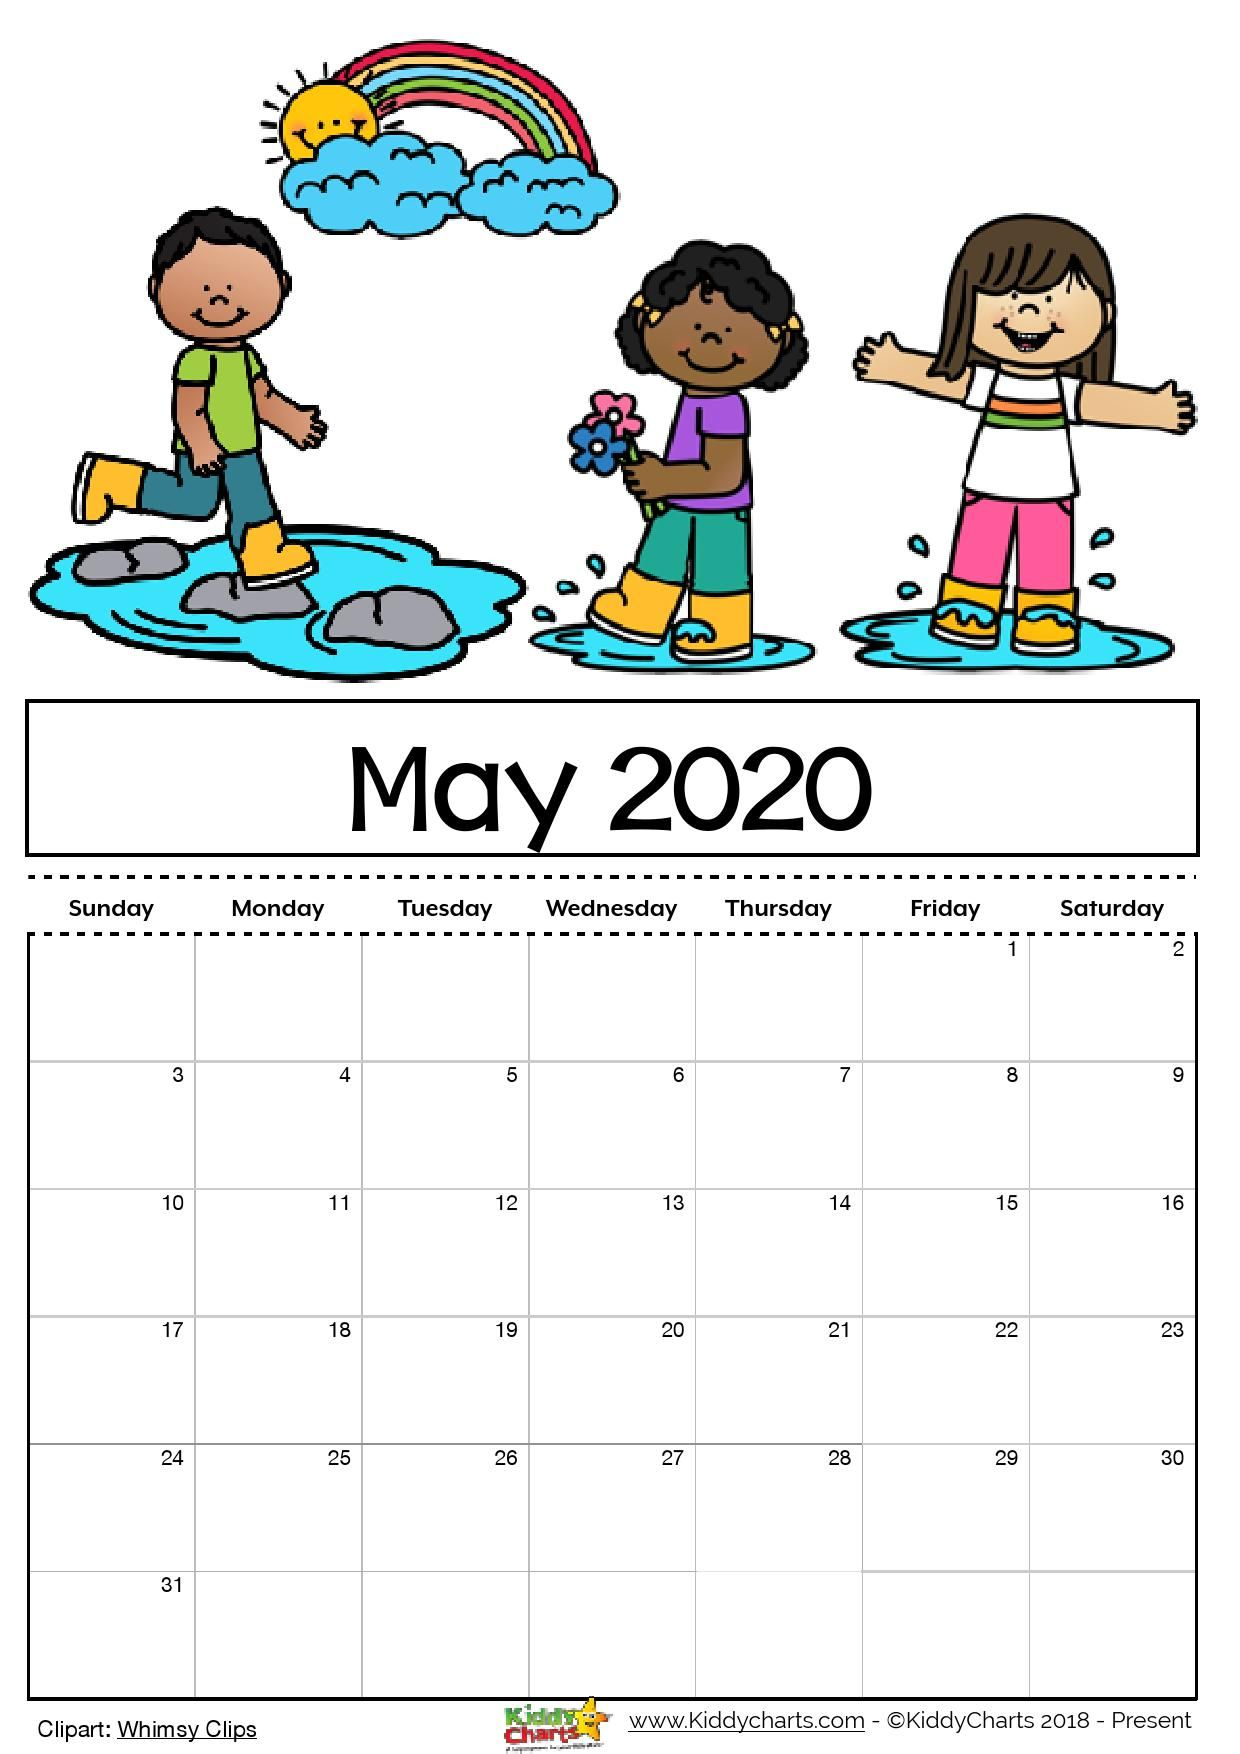 Check Out Our Free Editable 2020 Calendar Available For Download